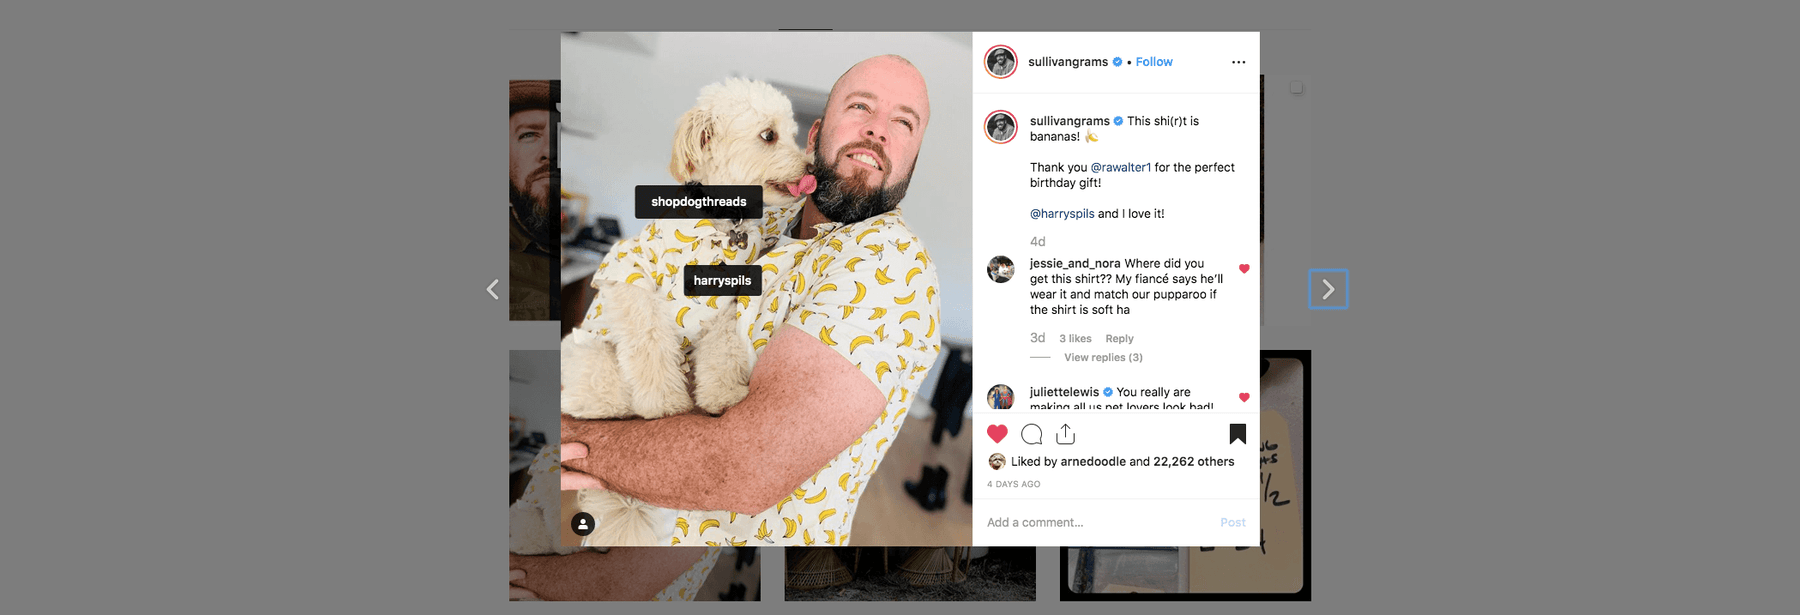 Chris Sullivan from This Is Us | Celebrities Matching Their Dogs